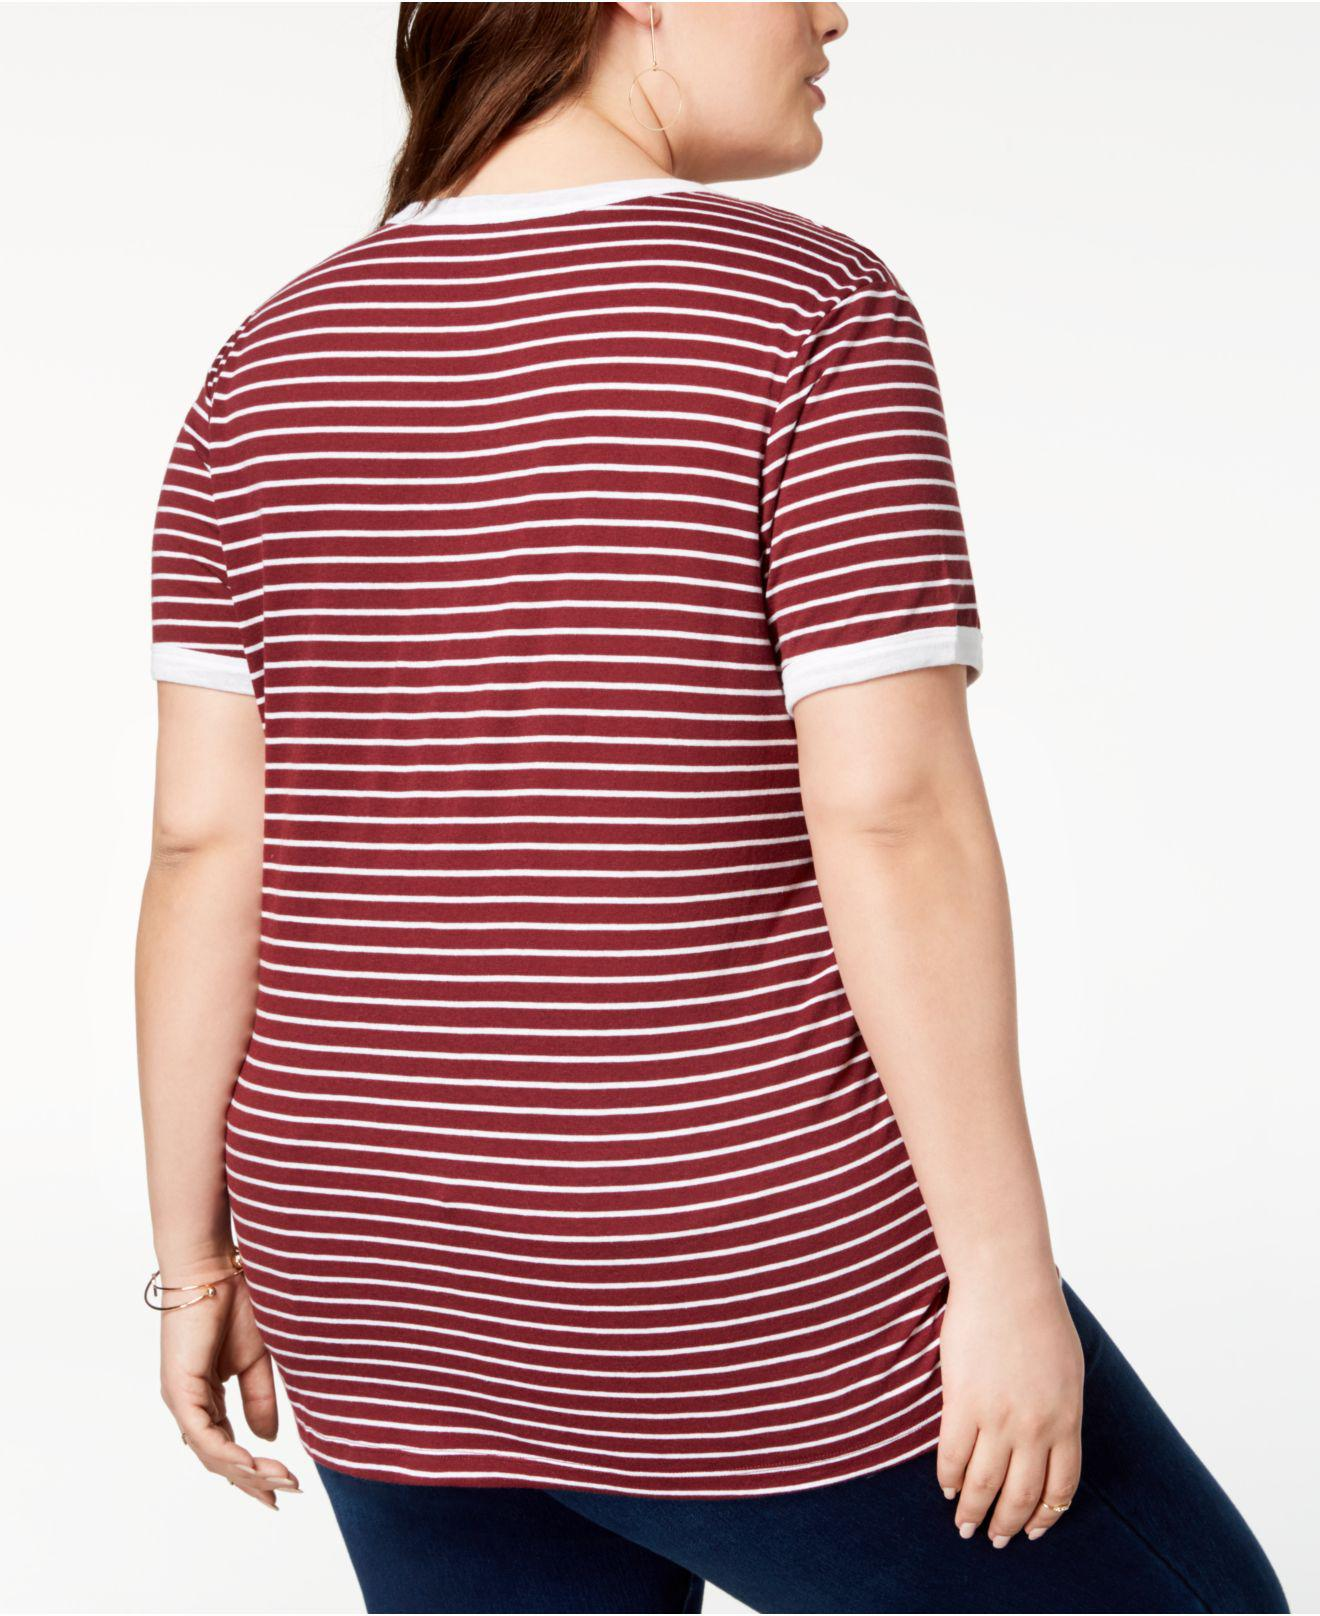 Disney Red Plus Size Striped Mickey & Minnie Mouse T-shirt